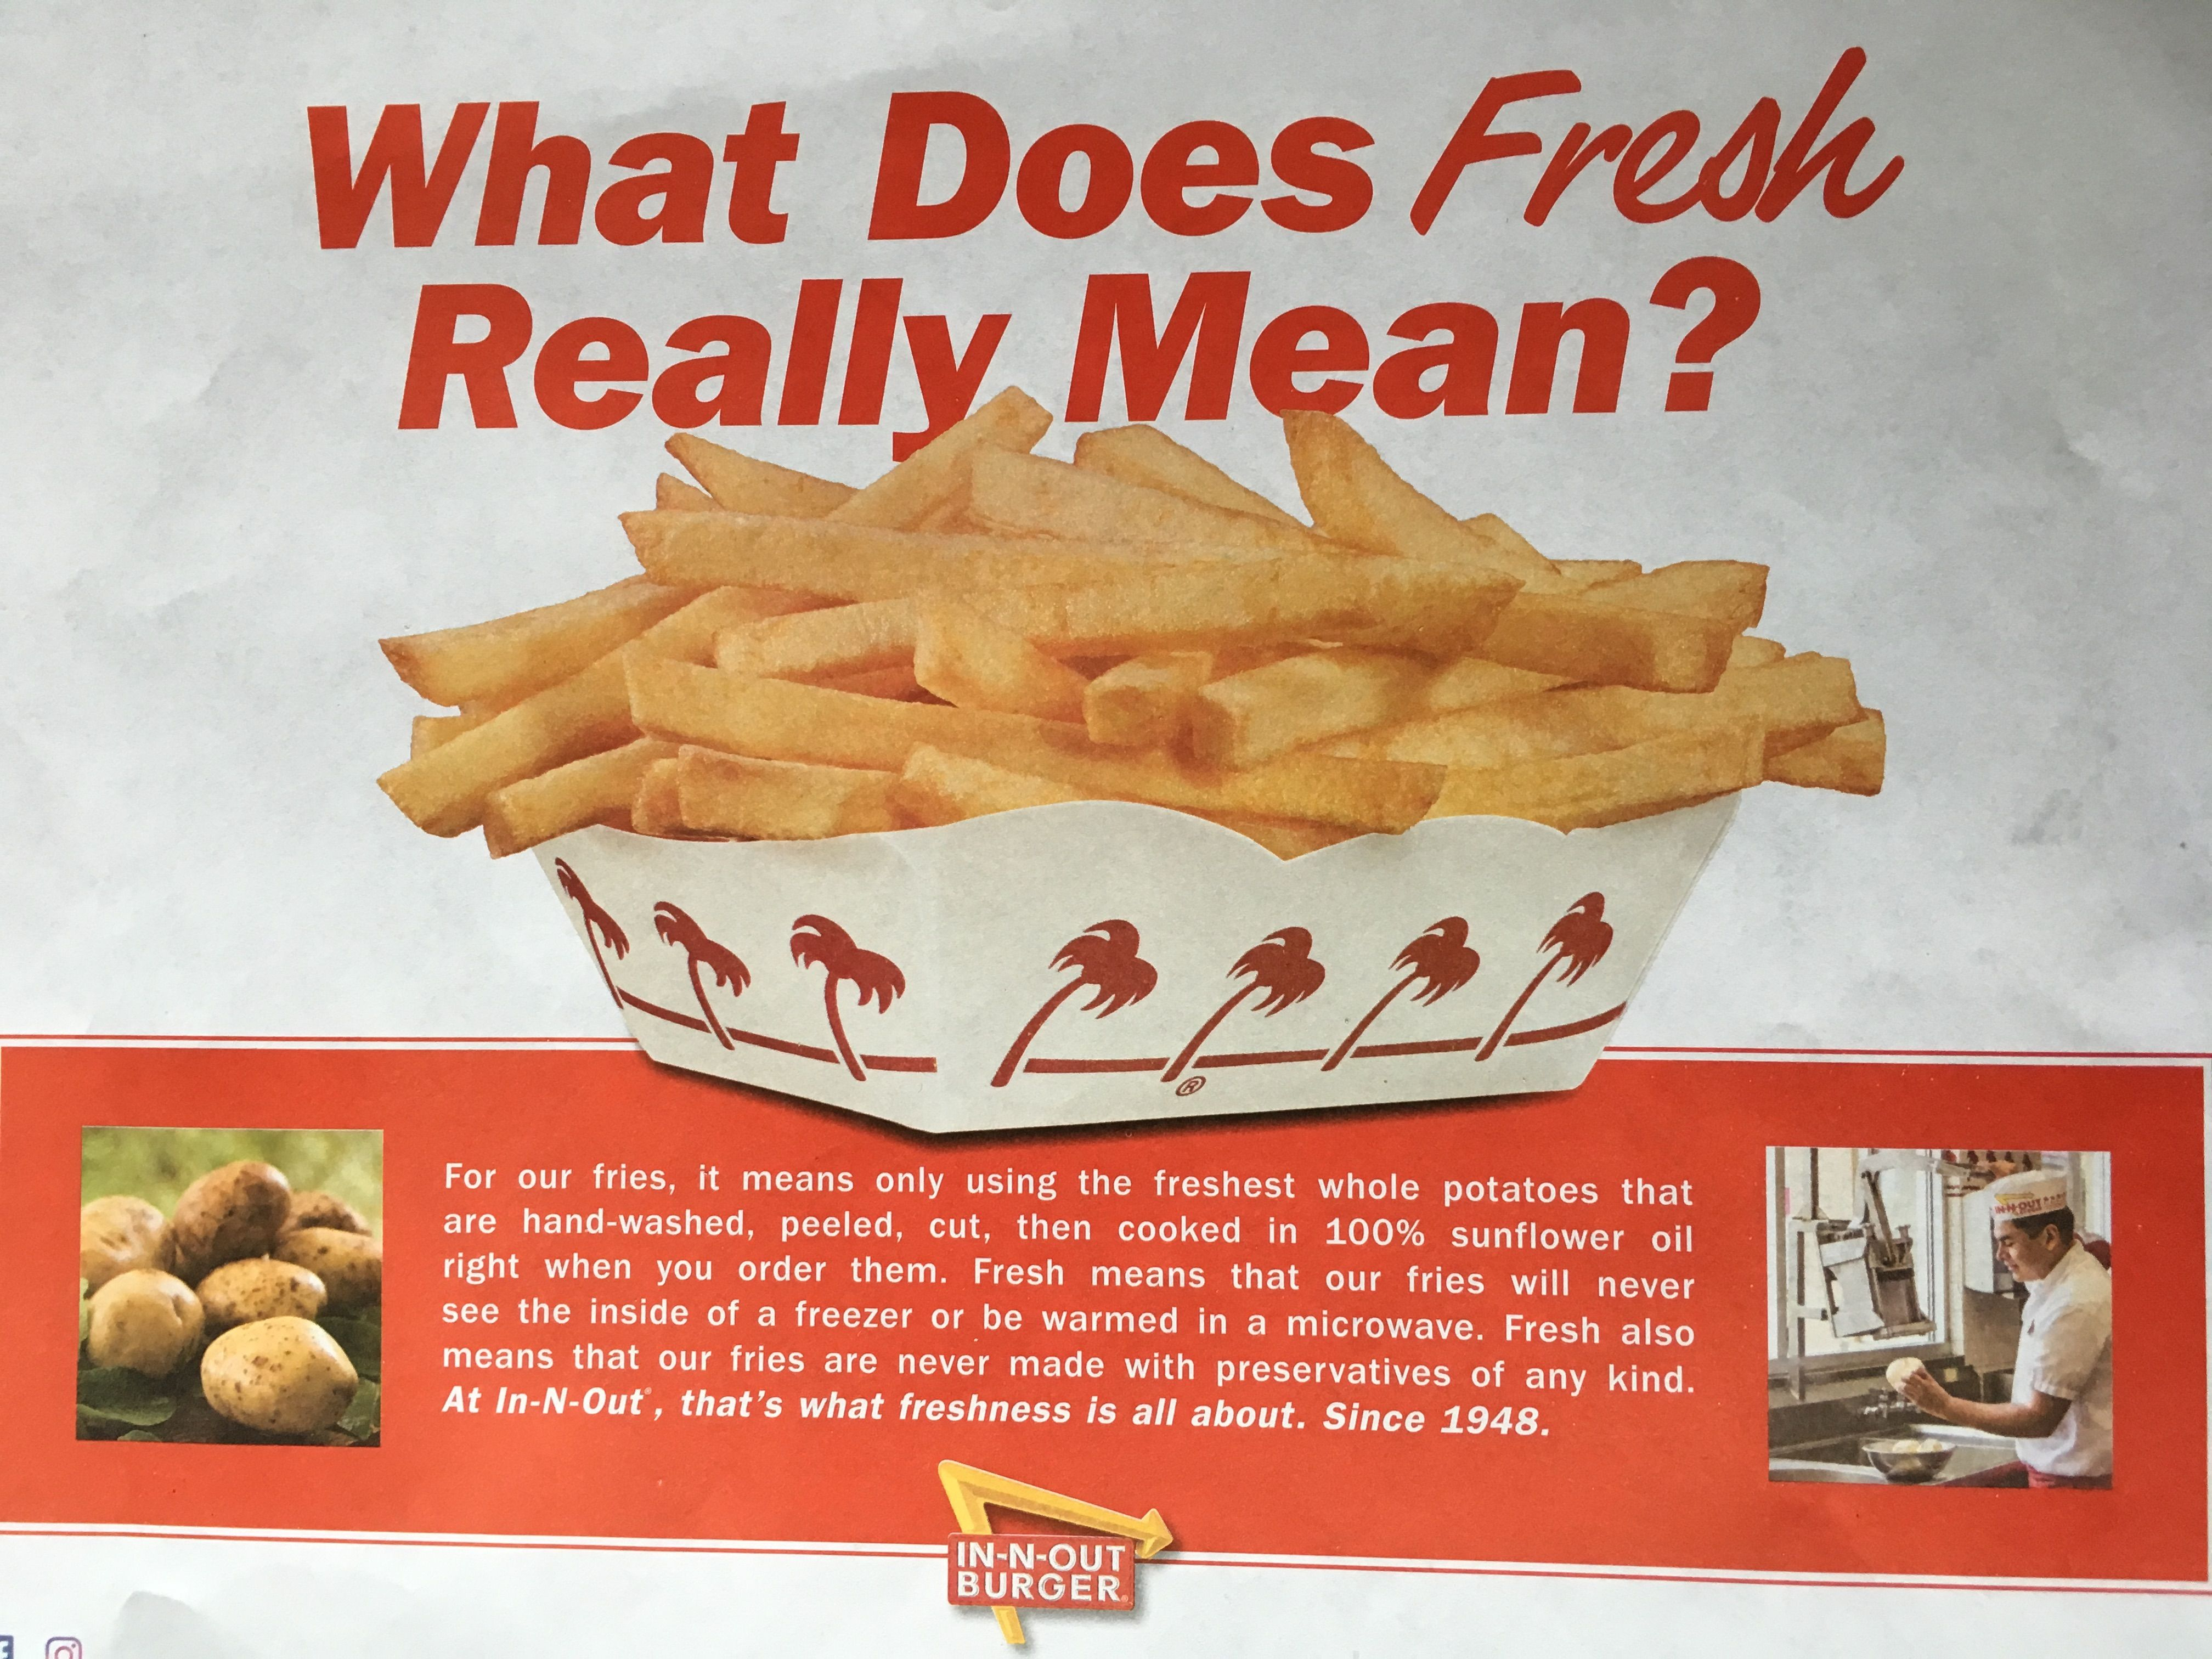 InNOut Burger uses fresh potato for fries. They are also